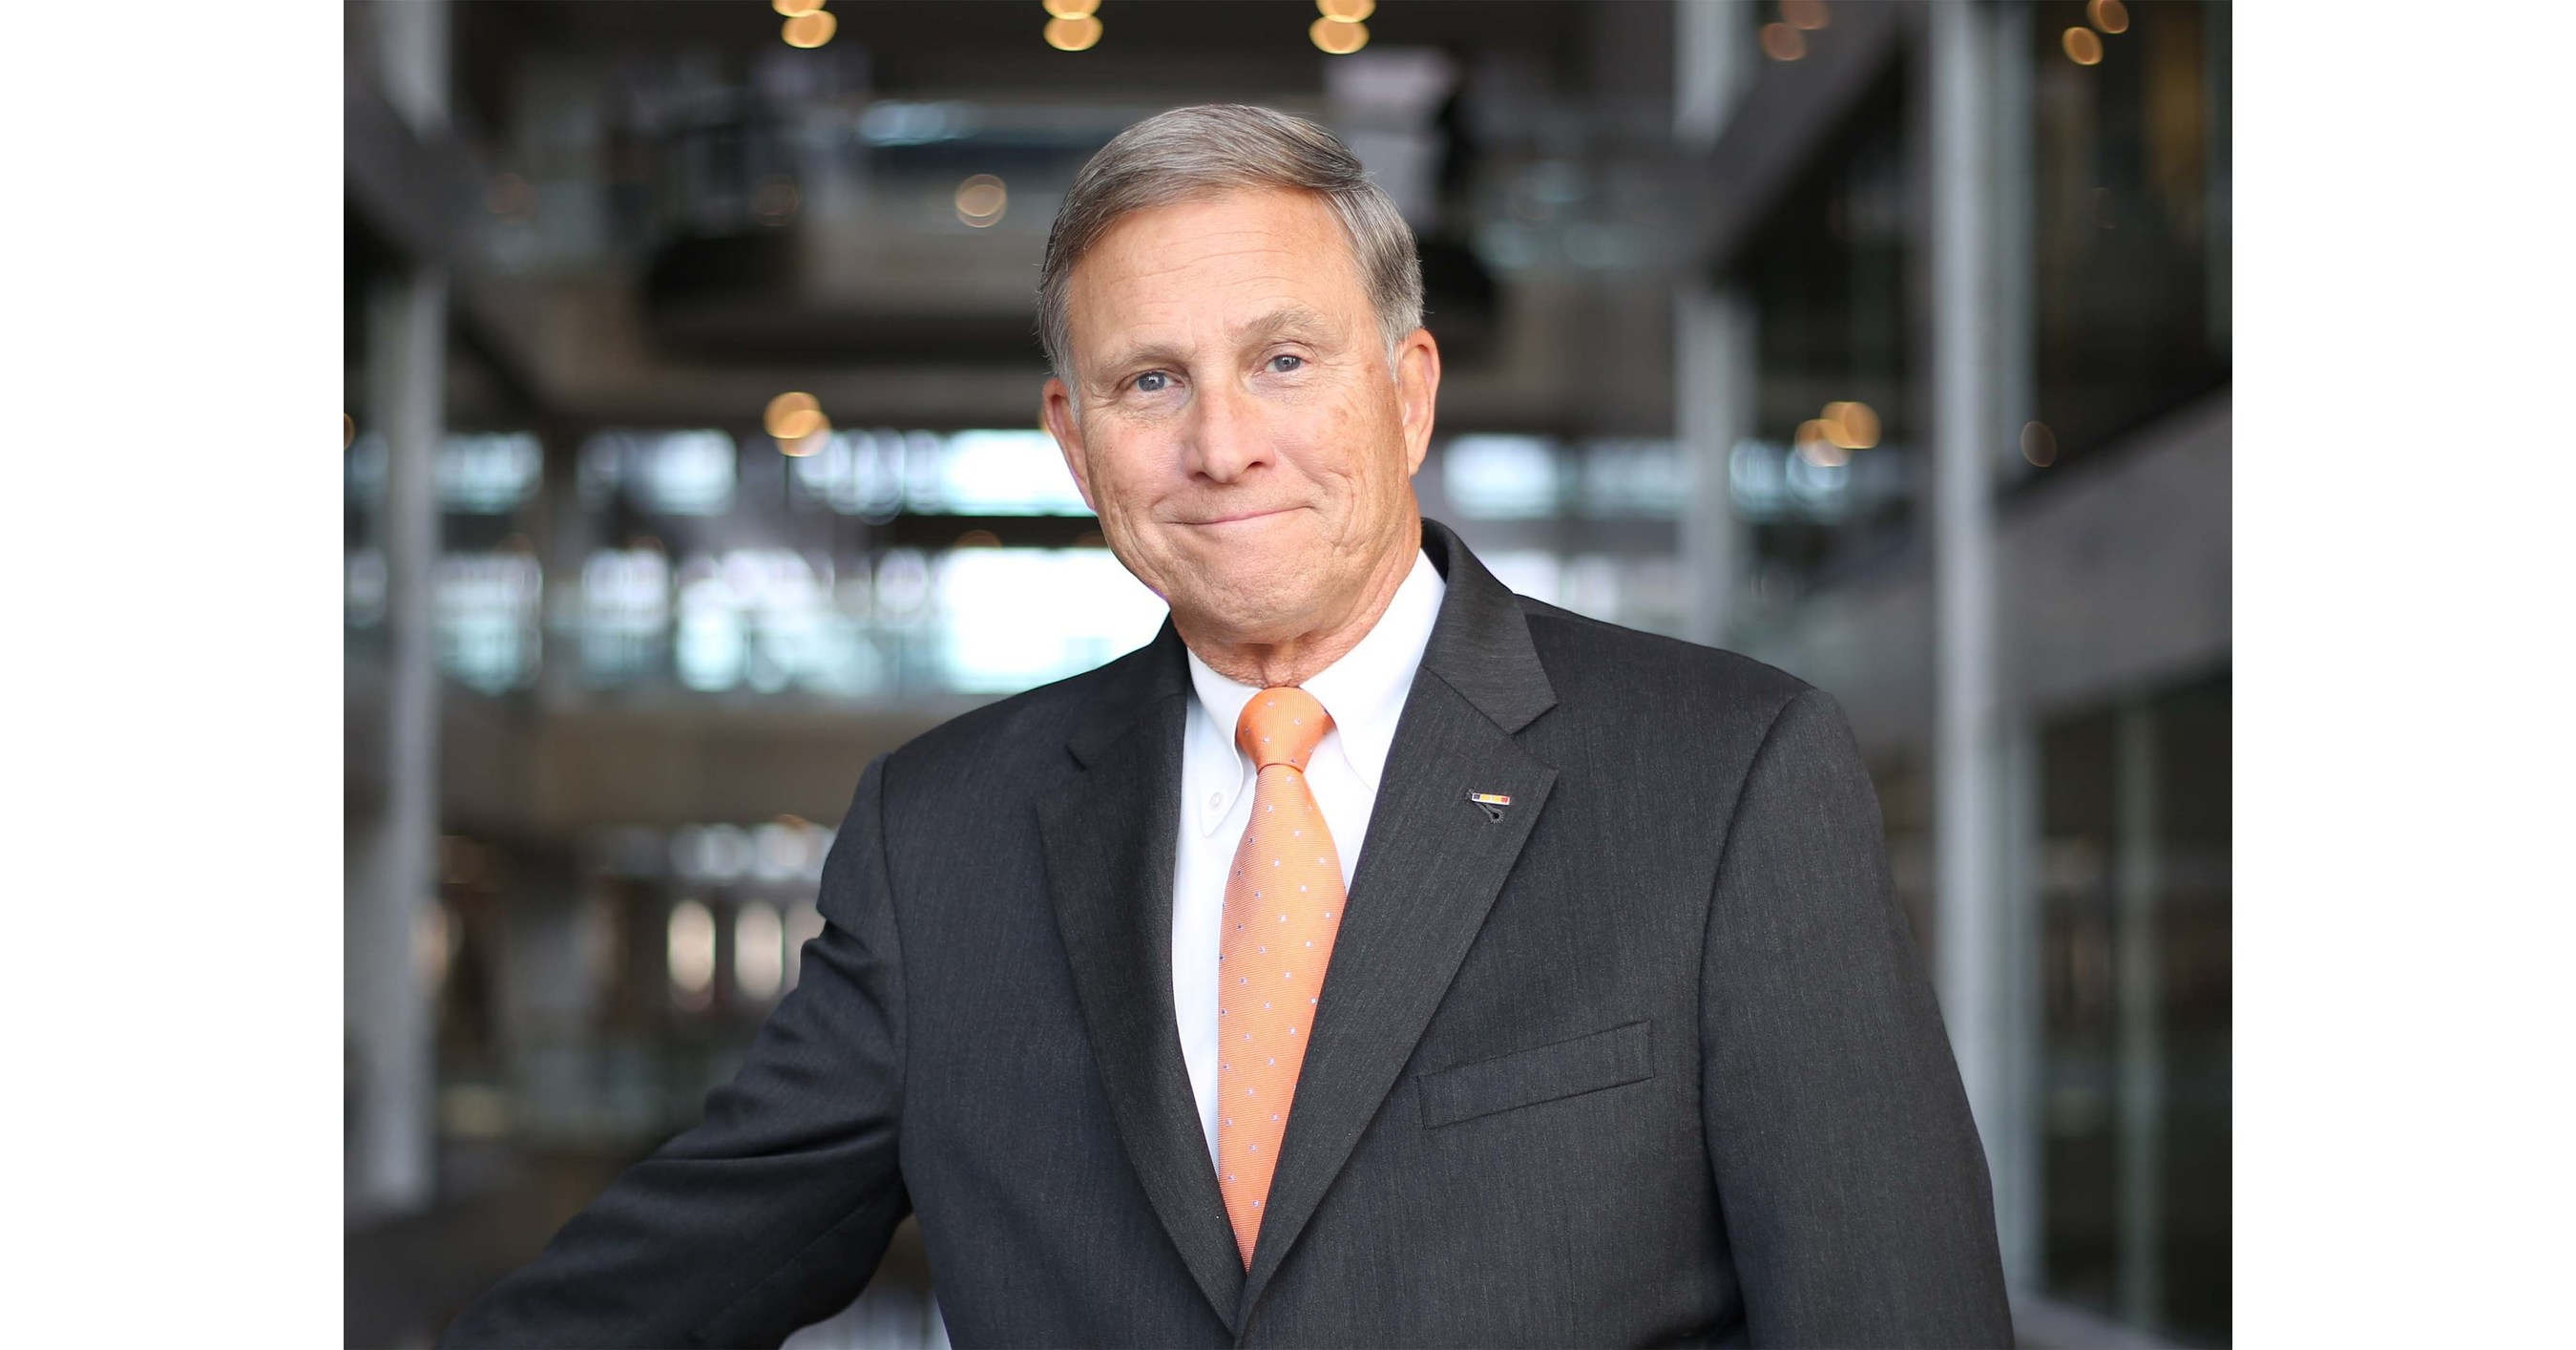 CRC Surface Technologies Adds Honorable Gregory J. Slavonic, Rear Admiral, U.S. Navy (Ret.) as Vice Chairman of the Board of Directors